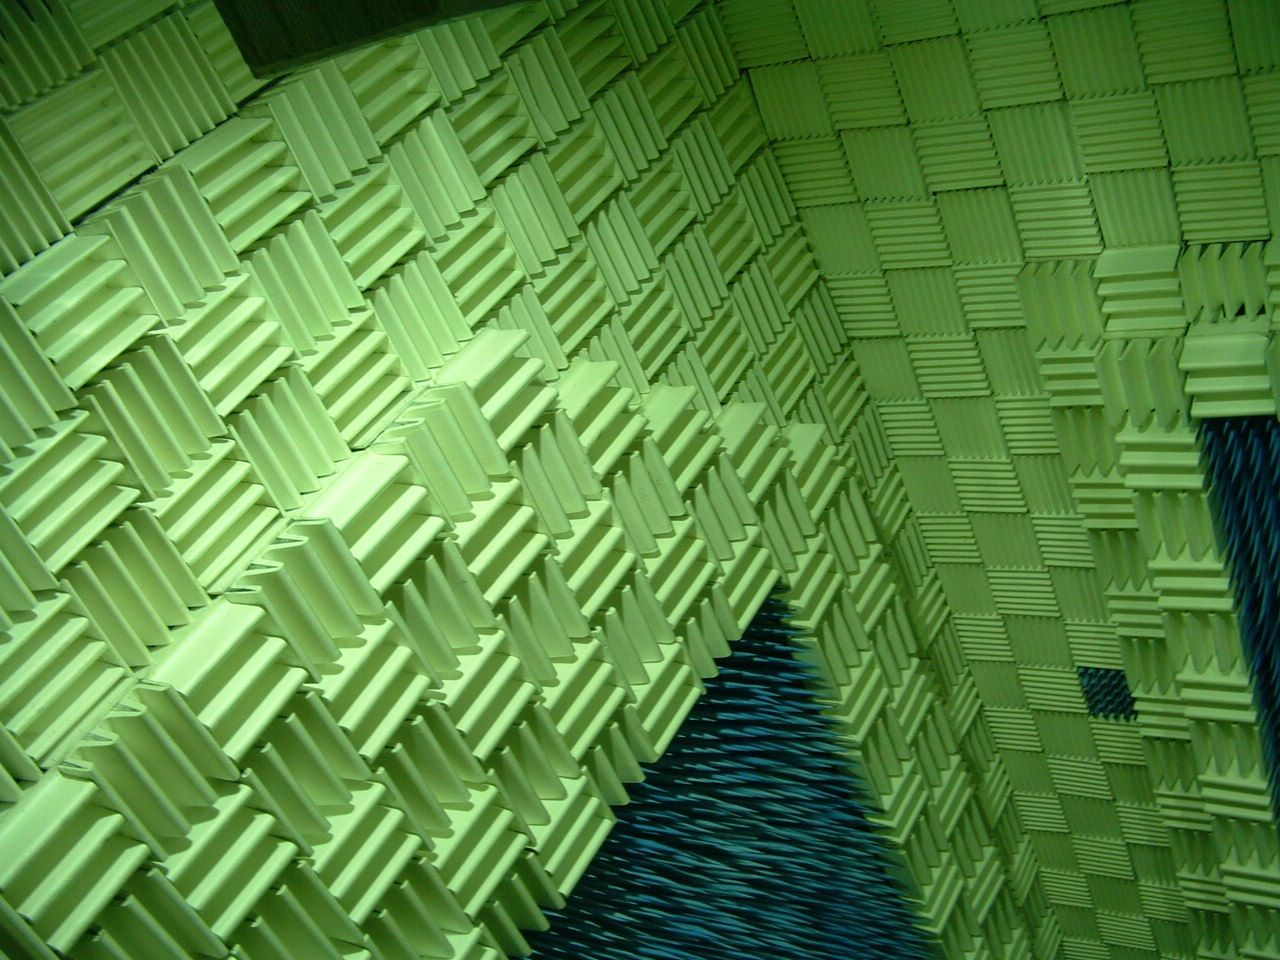 Pin by Compagnie O on Kortrijk Fuifzaal | Anechoic chamber